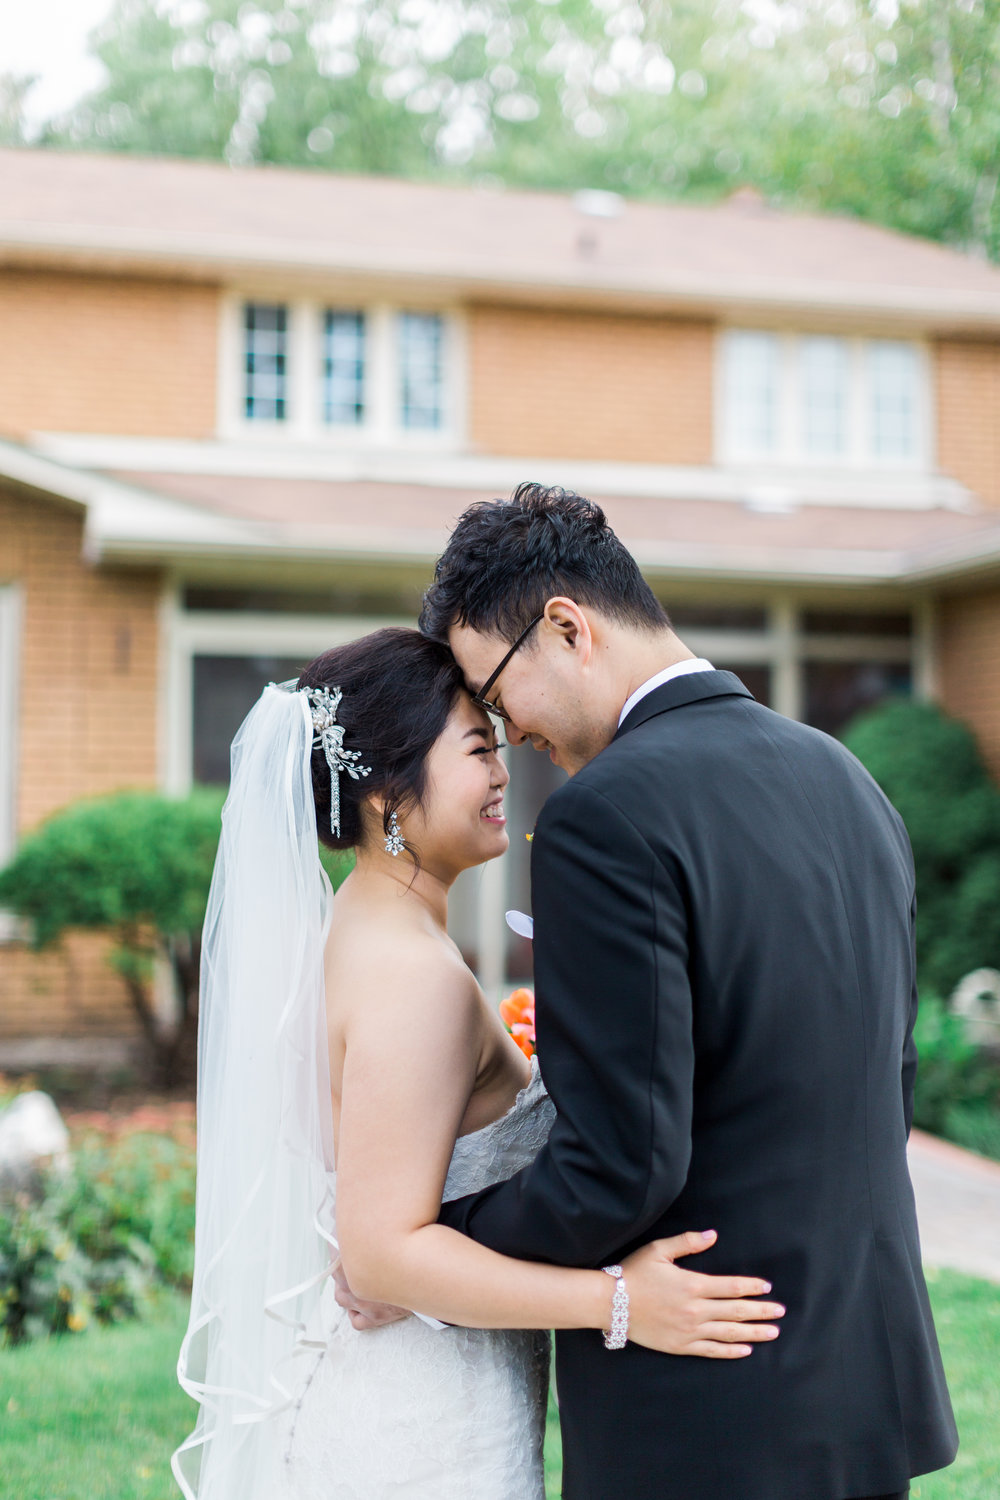 Toronto Fine Art Photographer - Toronto Hunt Club Wedding - First Look-26.jpg